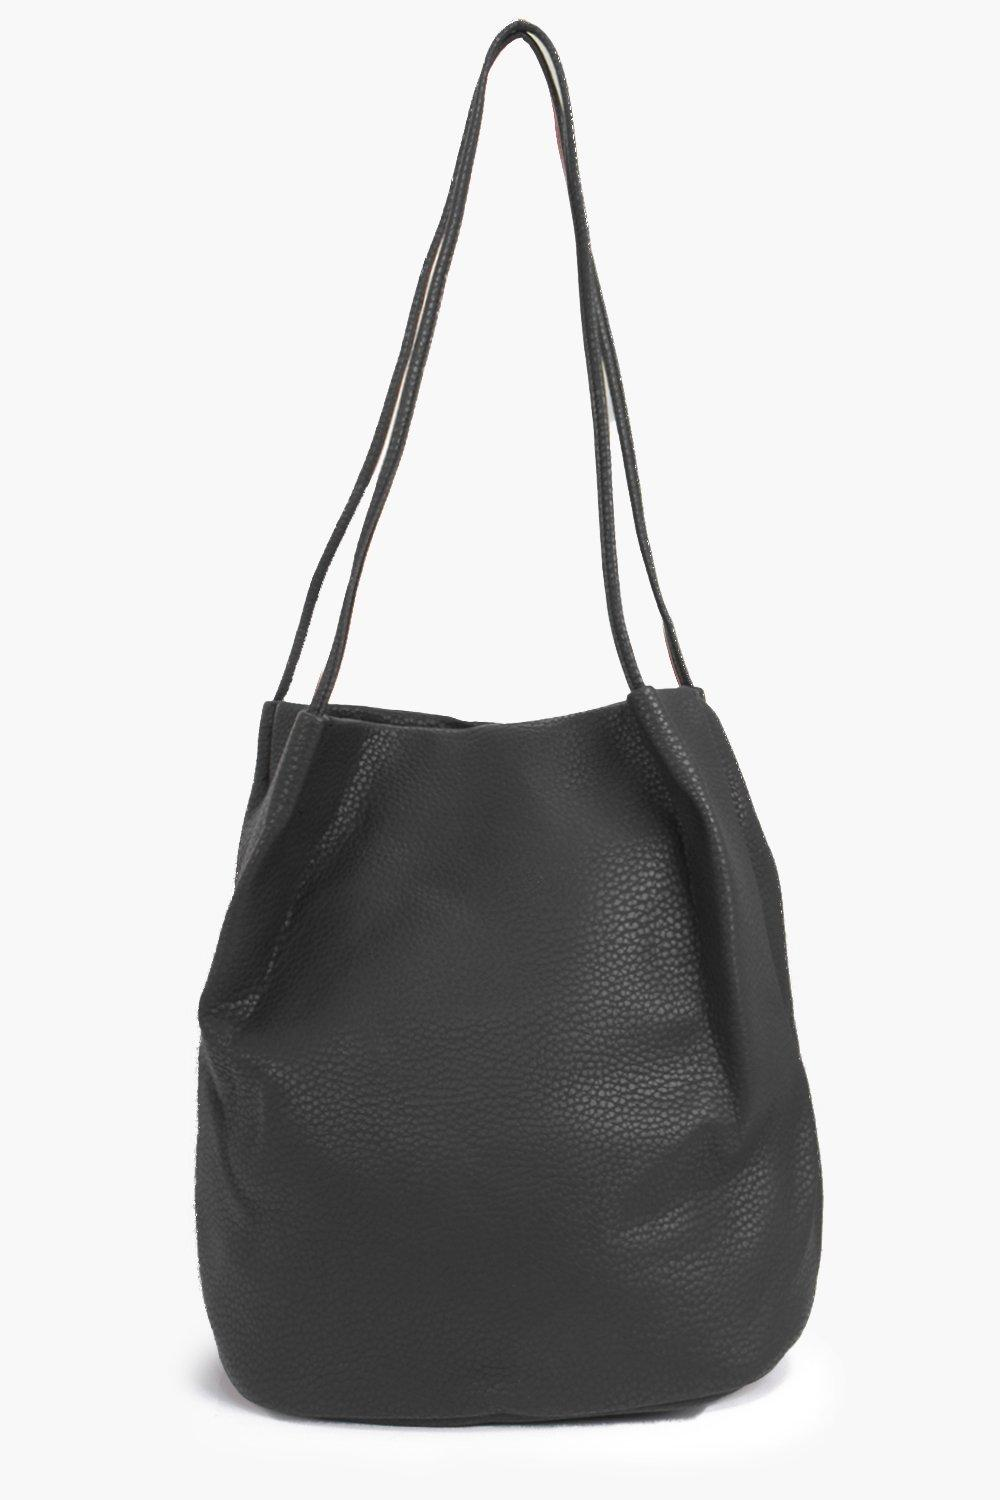 Origami Top Simple Duffle Bag - black - A bag will